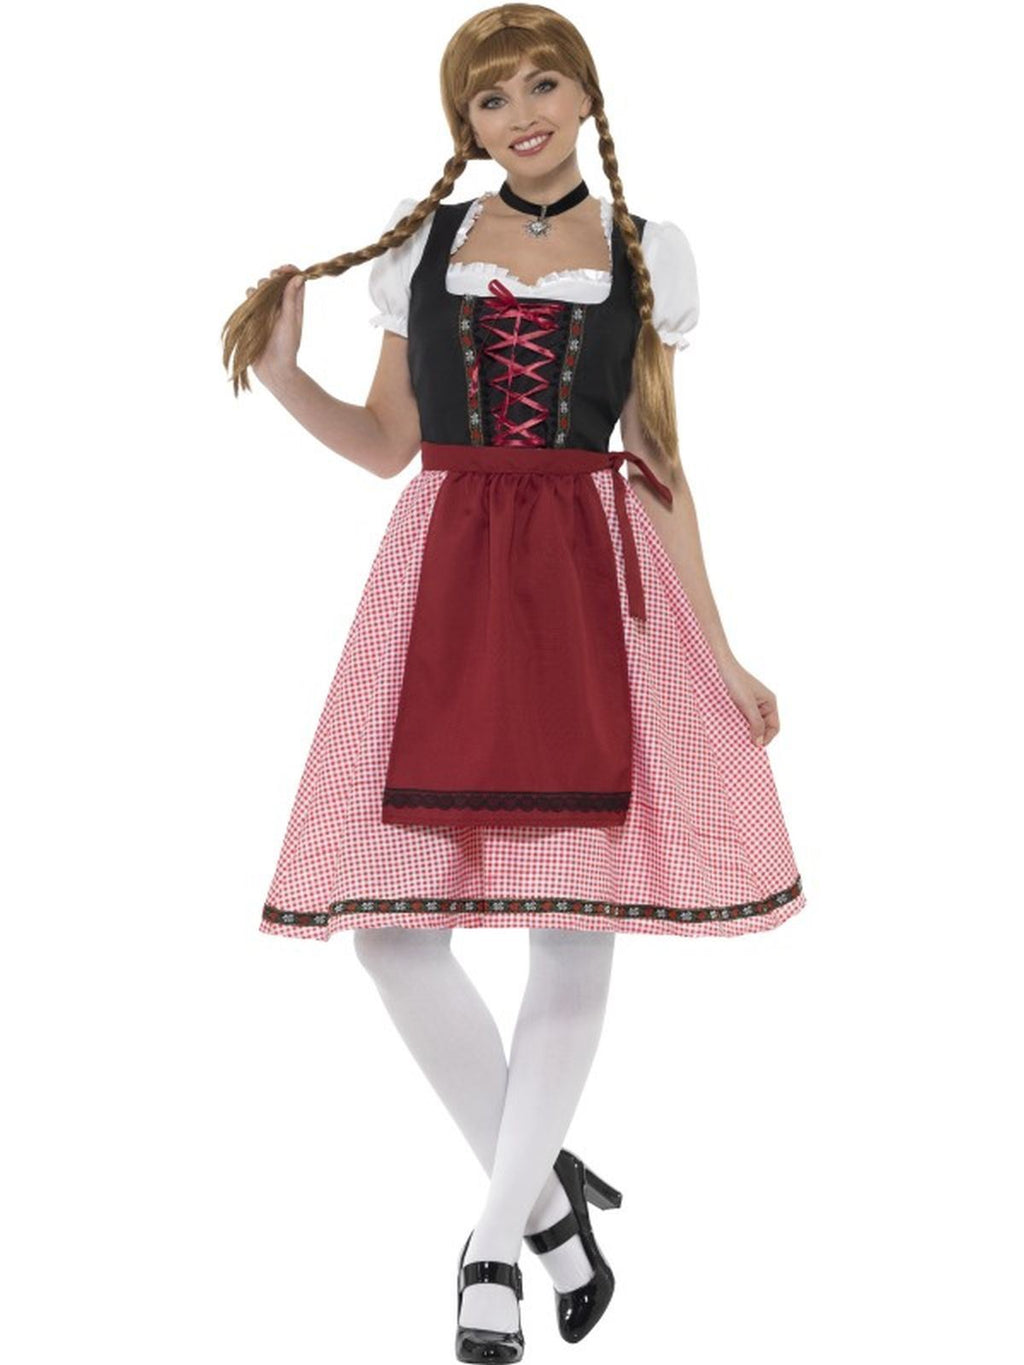 Bavarian Tavern Maid Women's Fancy Dress Costume